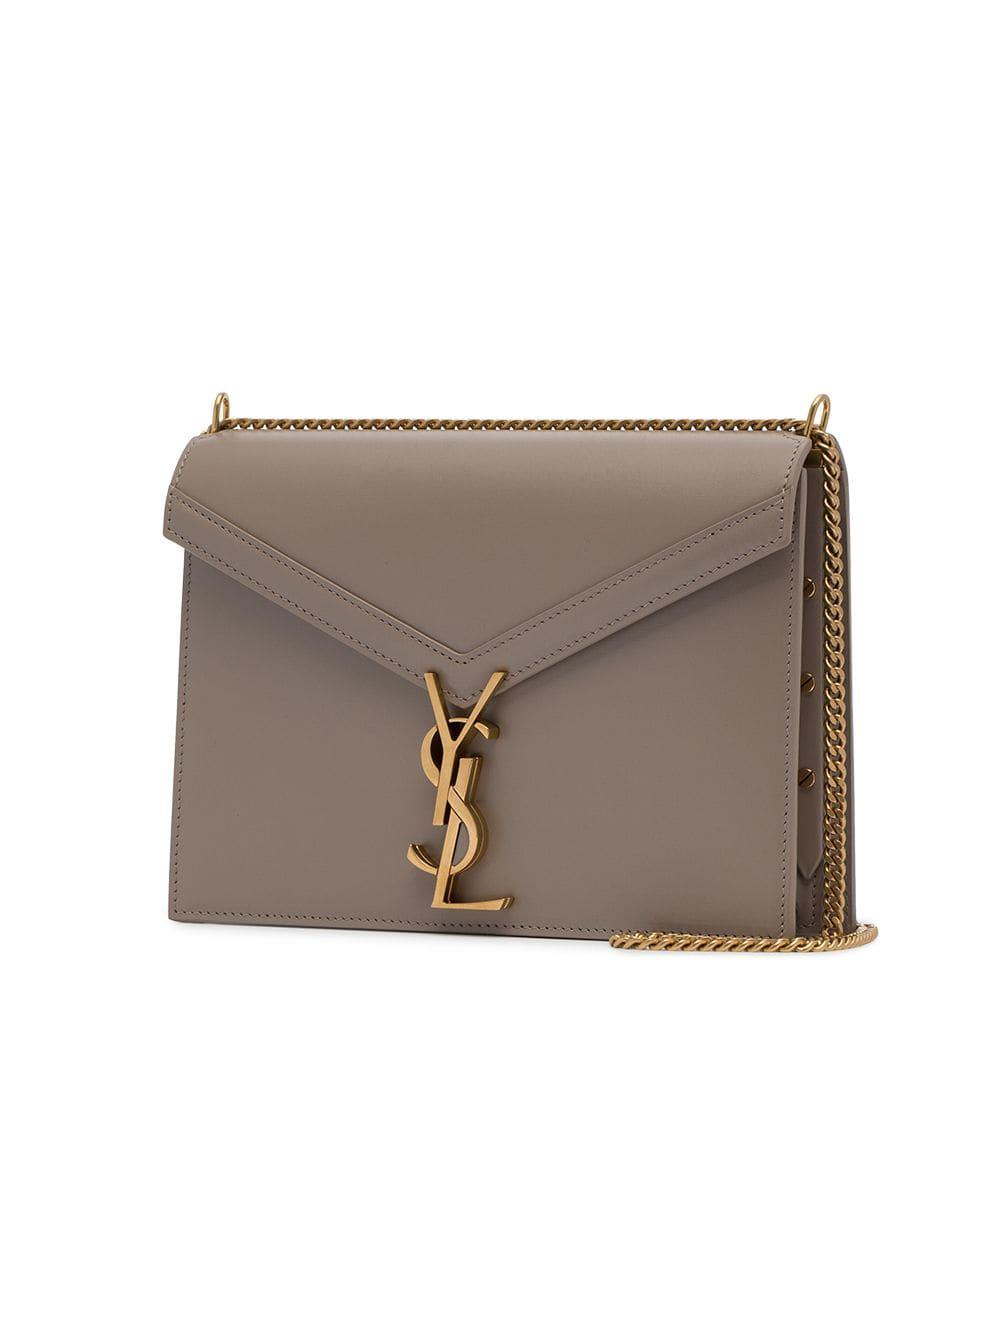 7898047105b Saint Laurent - Natural Beige Cassandre Logo Leather Shoulder Bag - Lyst.  View fullscreen